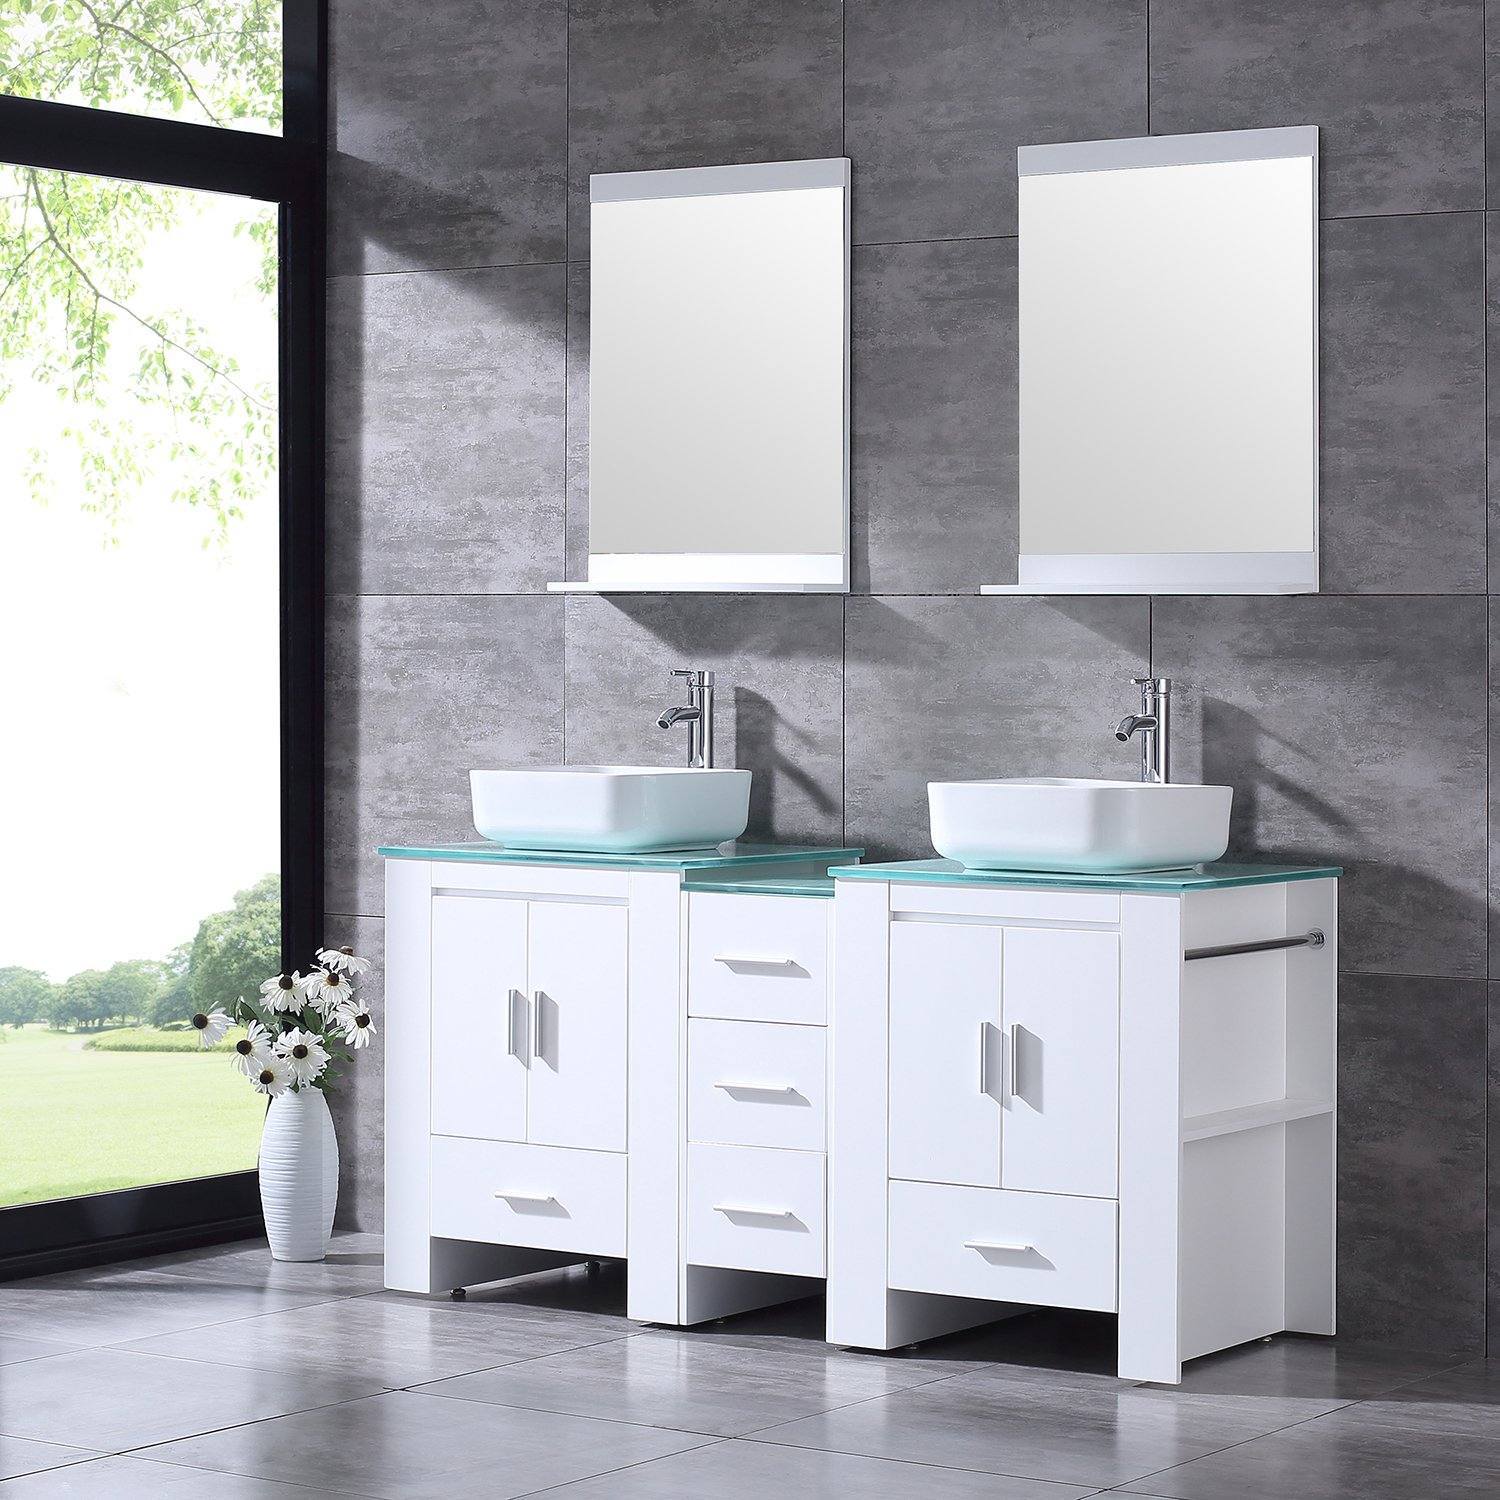 """BATHJOY Luxury 60"""" White Bathroom Double Wood Vanity Cabinet with Square Ceramic Vessel Sink and Mirrors Faucet Drain Combo by BATHJOY (Image #2)"""